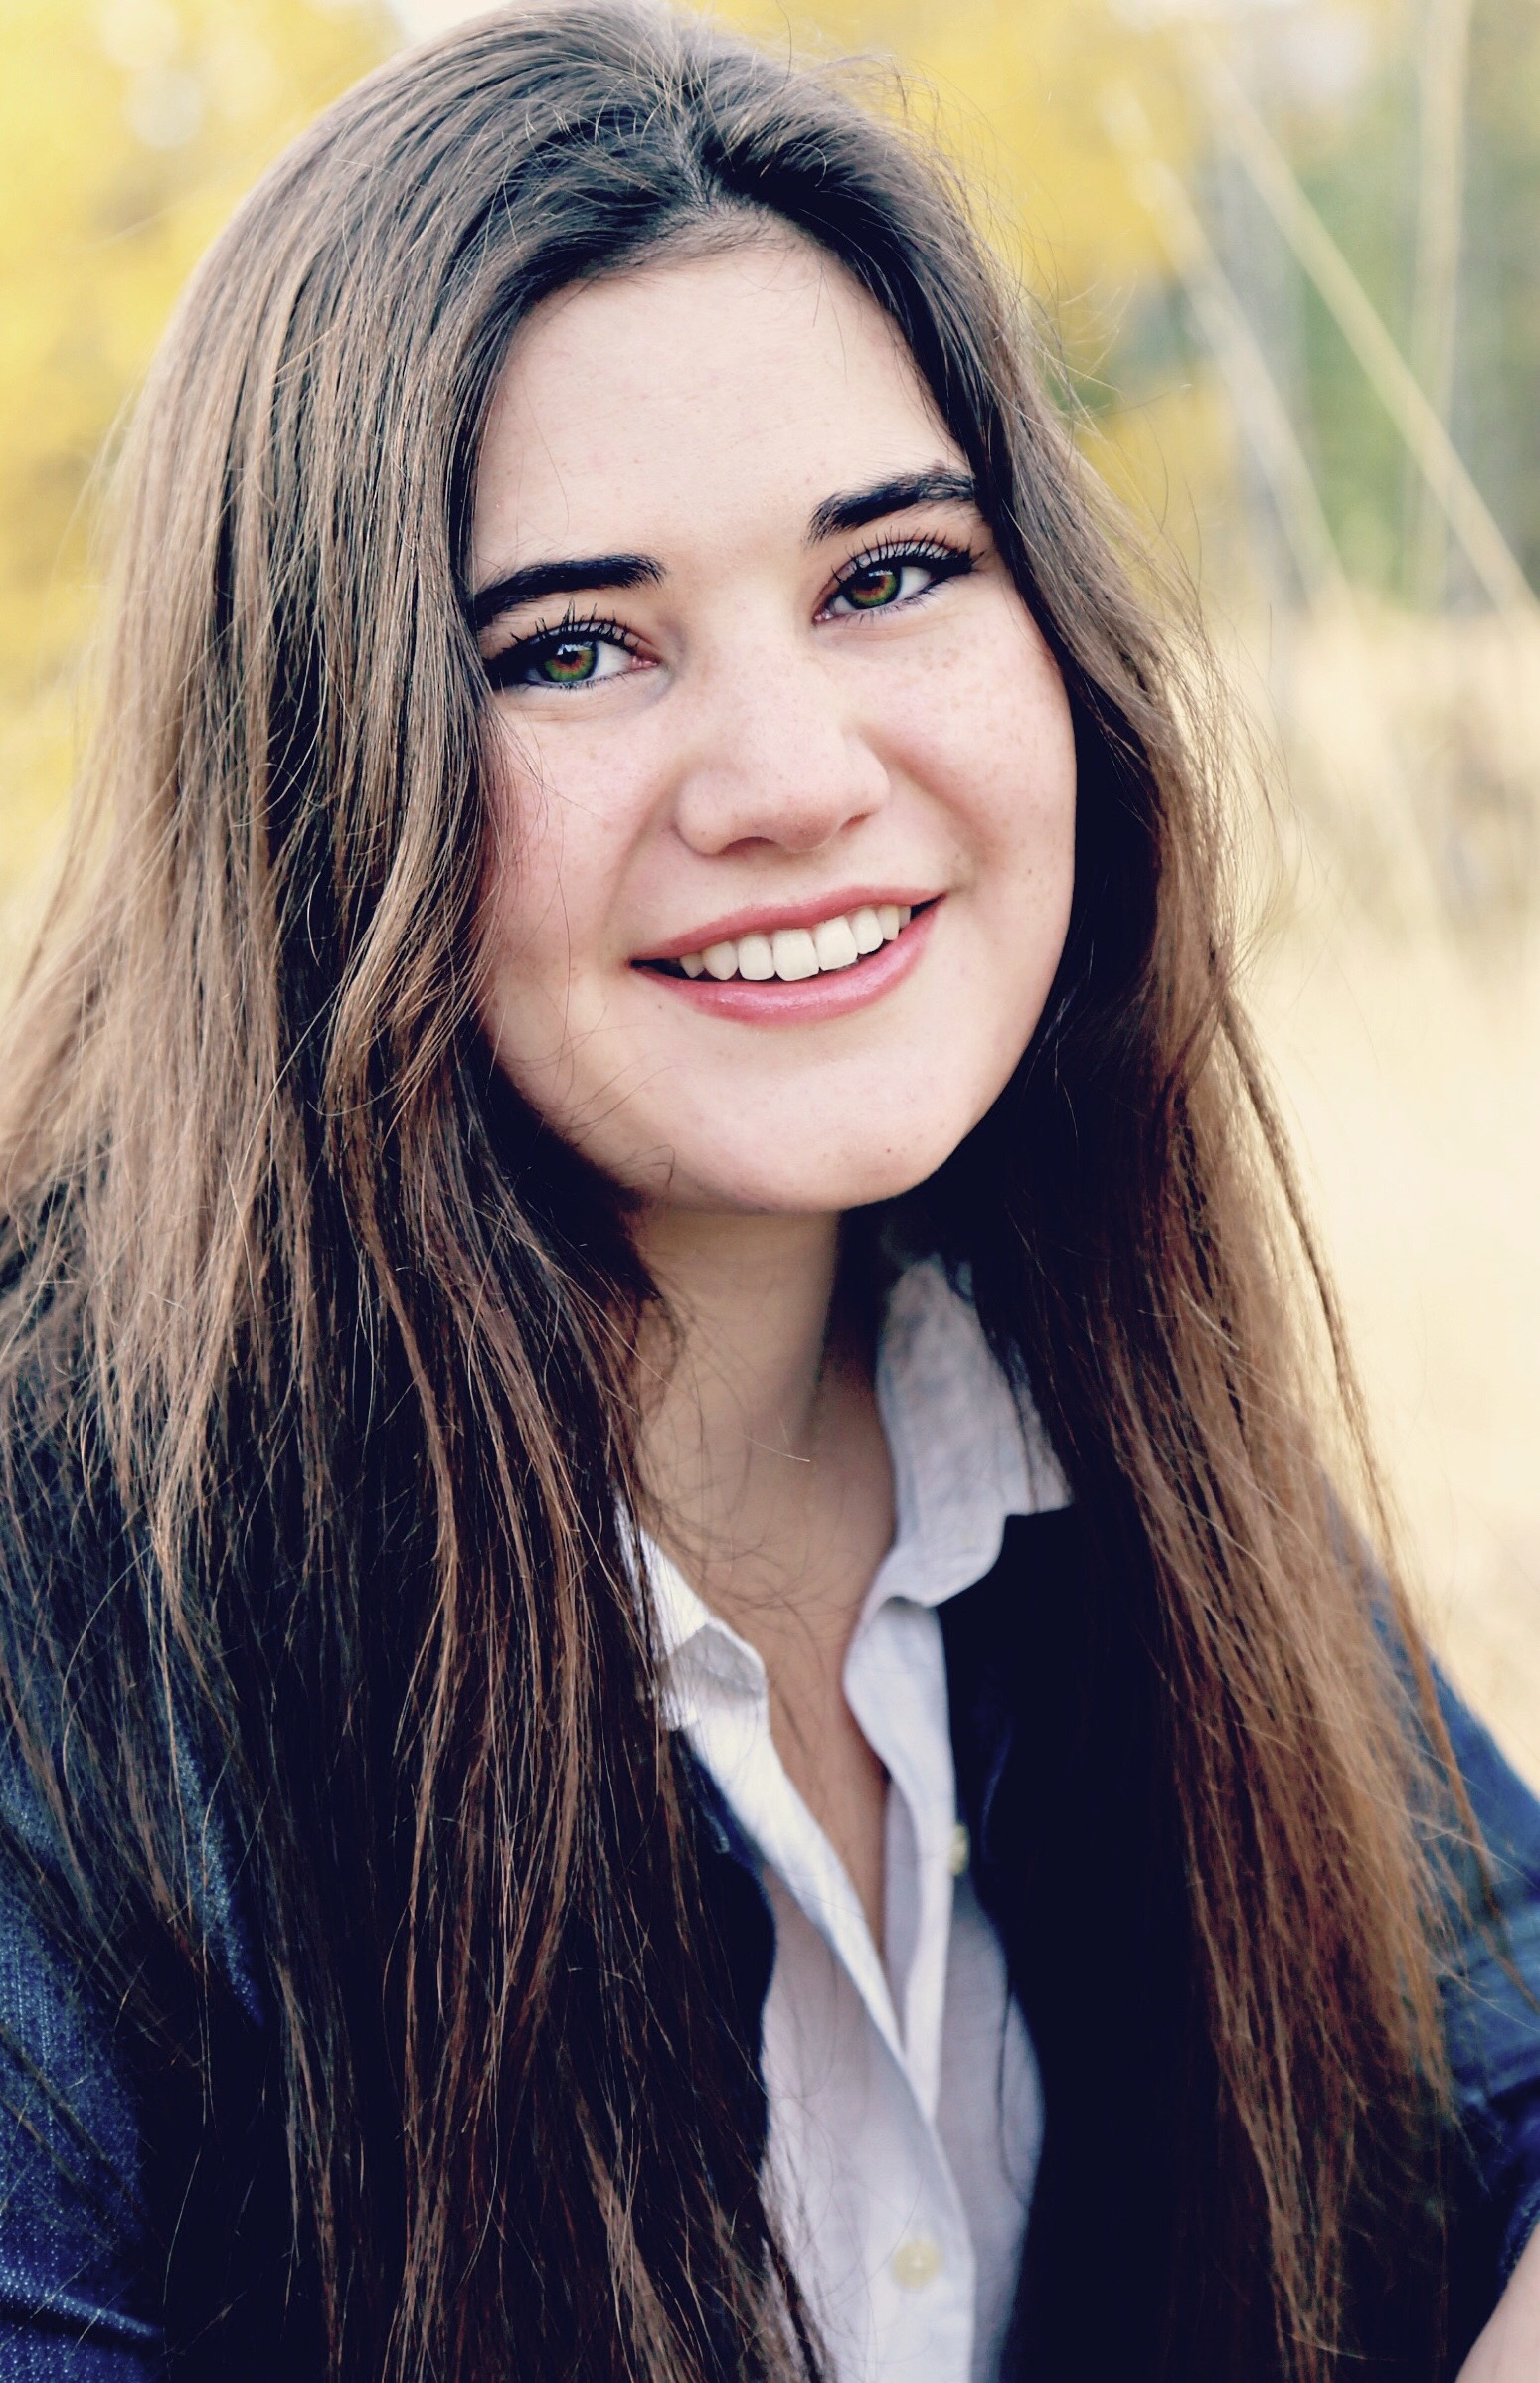 """- Ibby graduated Valedictorian of Seeley Swan High School in 2018. She was a Five-Time Air Rifle Junior Olympian, President of Seeley Swan Student Council, President of LEO's Club, and Missoula County Public Schools Student Trustee.Ibby recently completed her freshman year at the University of Nebraska-Lincoln, studying Computer Science with a Minor in Mathematics. Ibby writes, """"My first year has taught me to prioritize, manage my time and be proactive in both school and athletics,"""" although she worked hard to find time to volunteer with student organizations her first year!"""